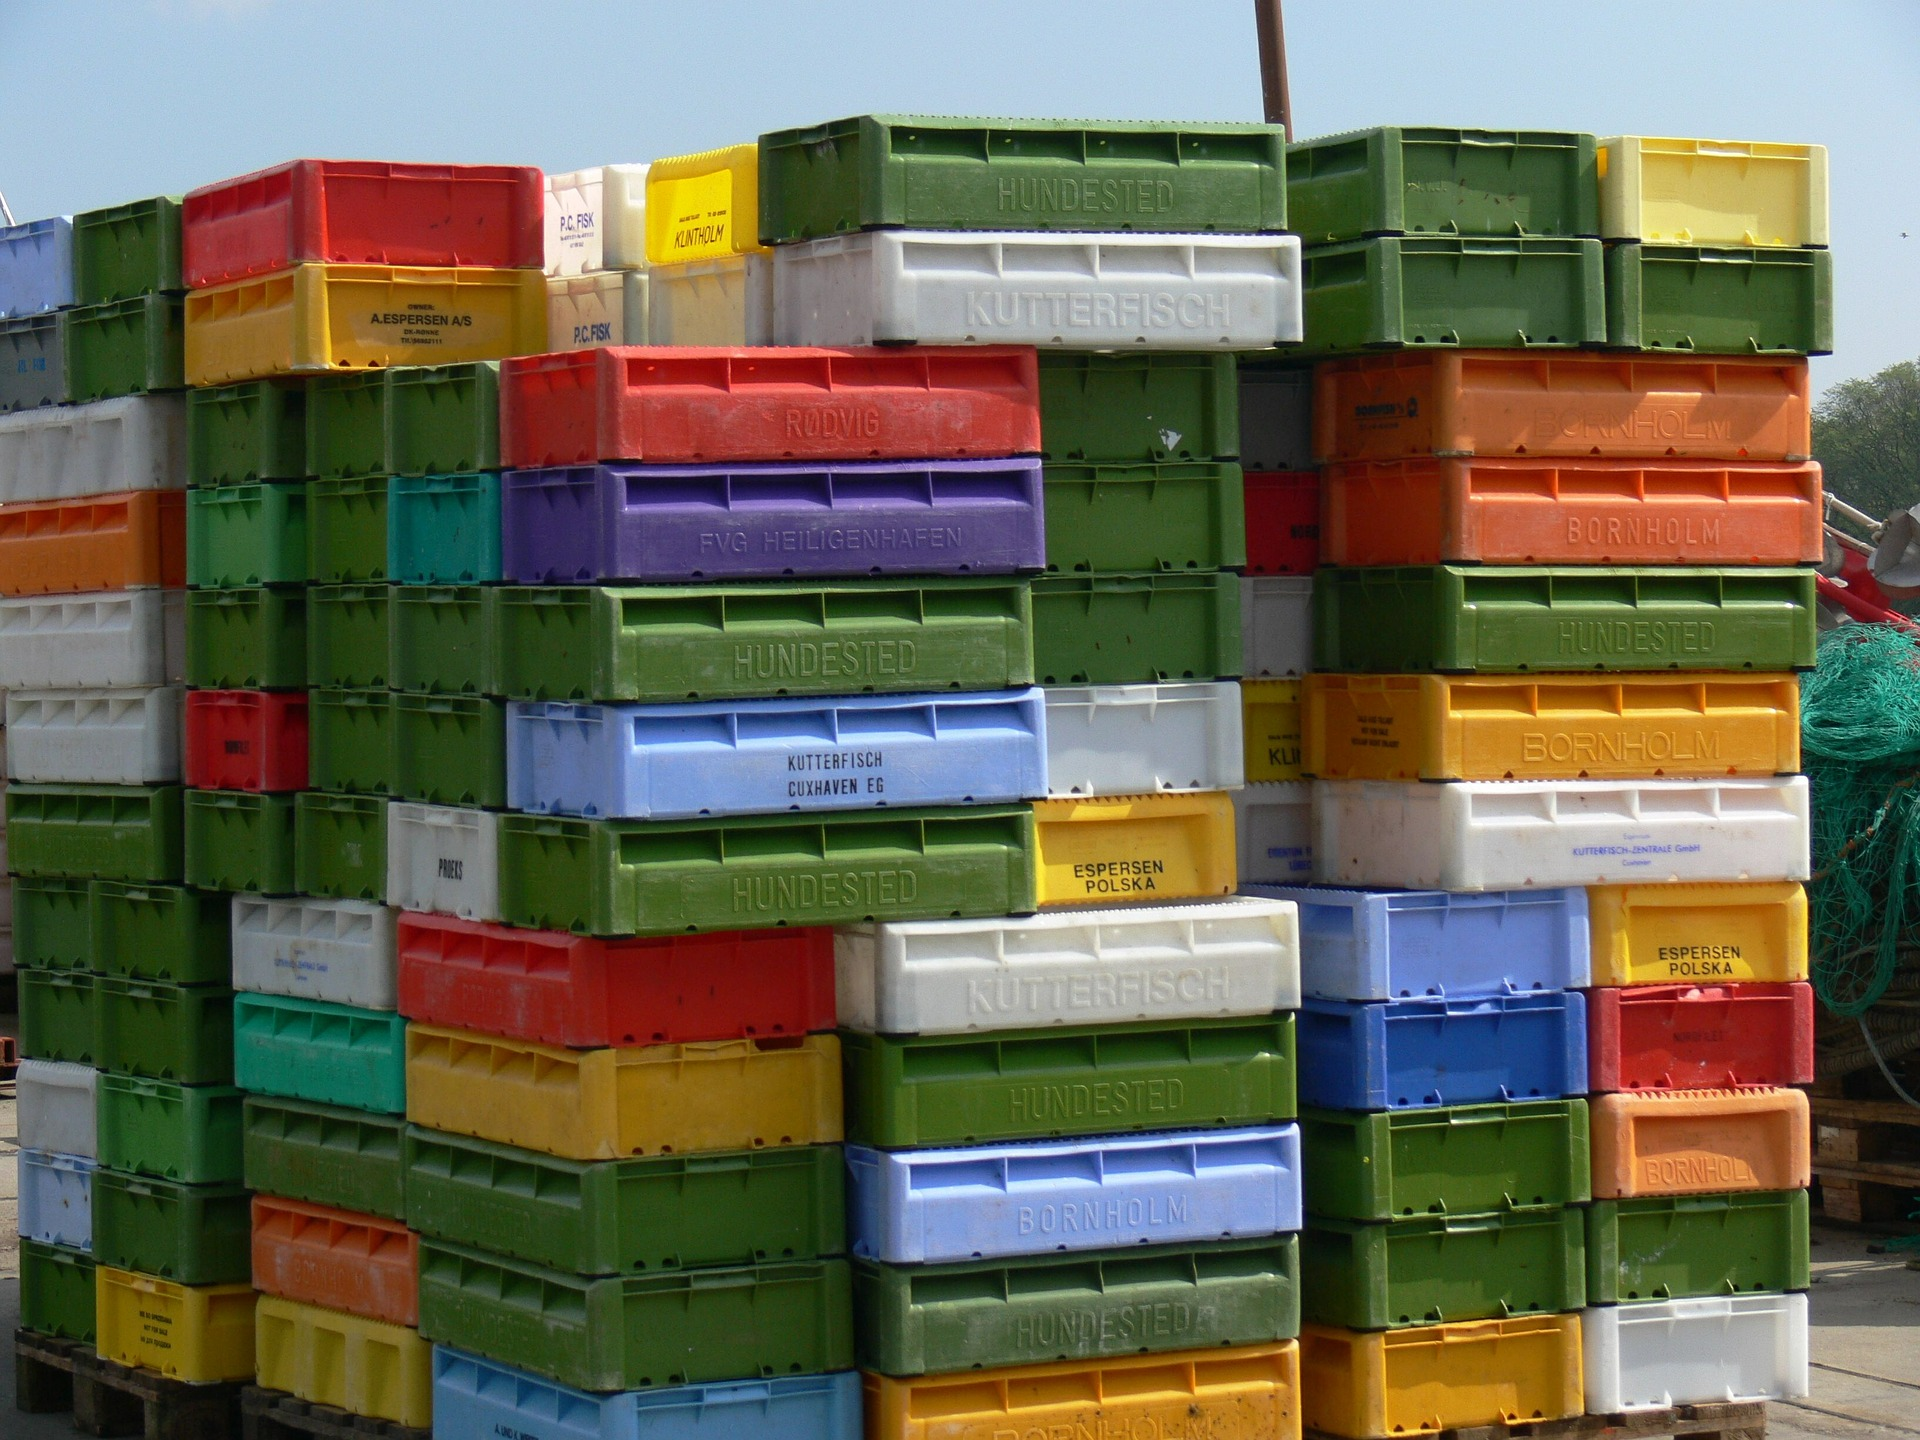 Renting plastic boxes is good both for the environment and for the safety of your belongings.